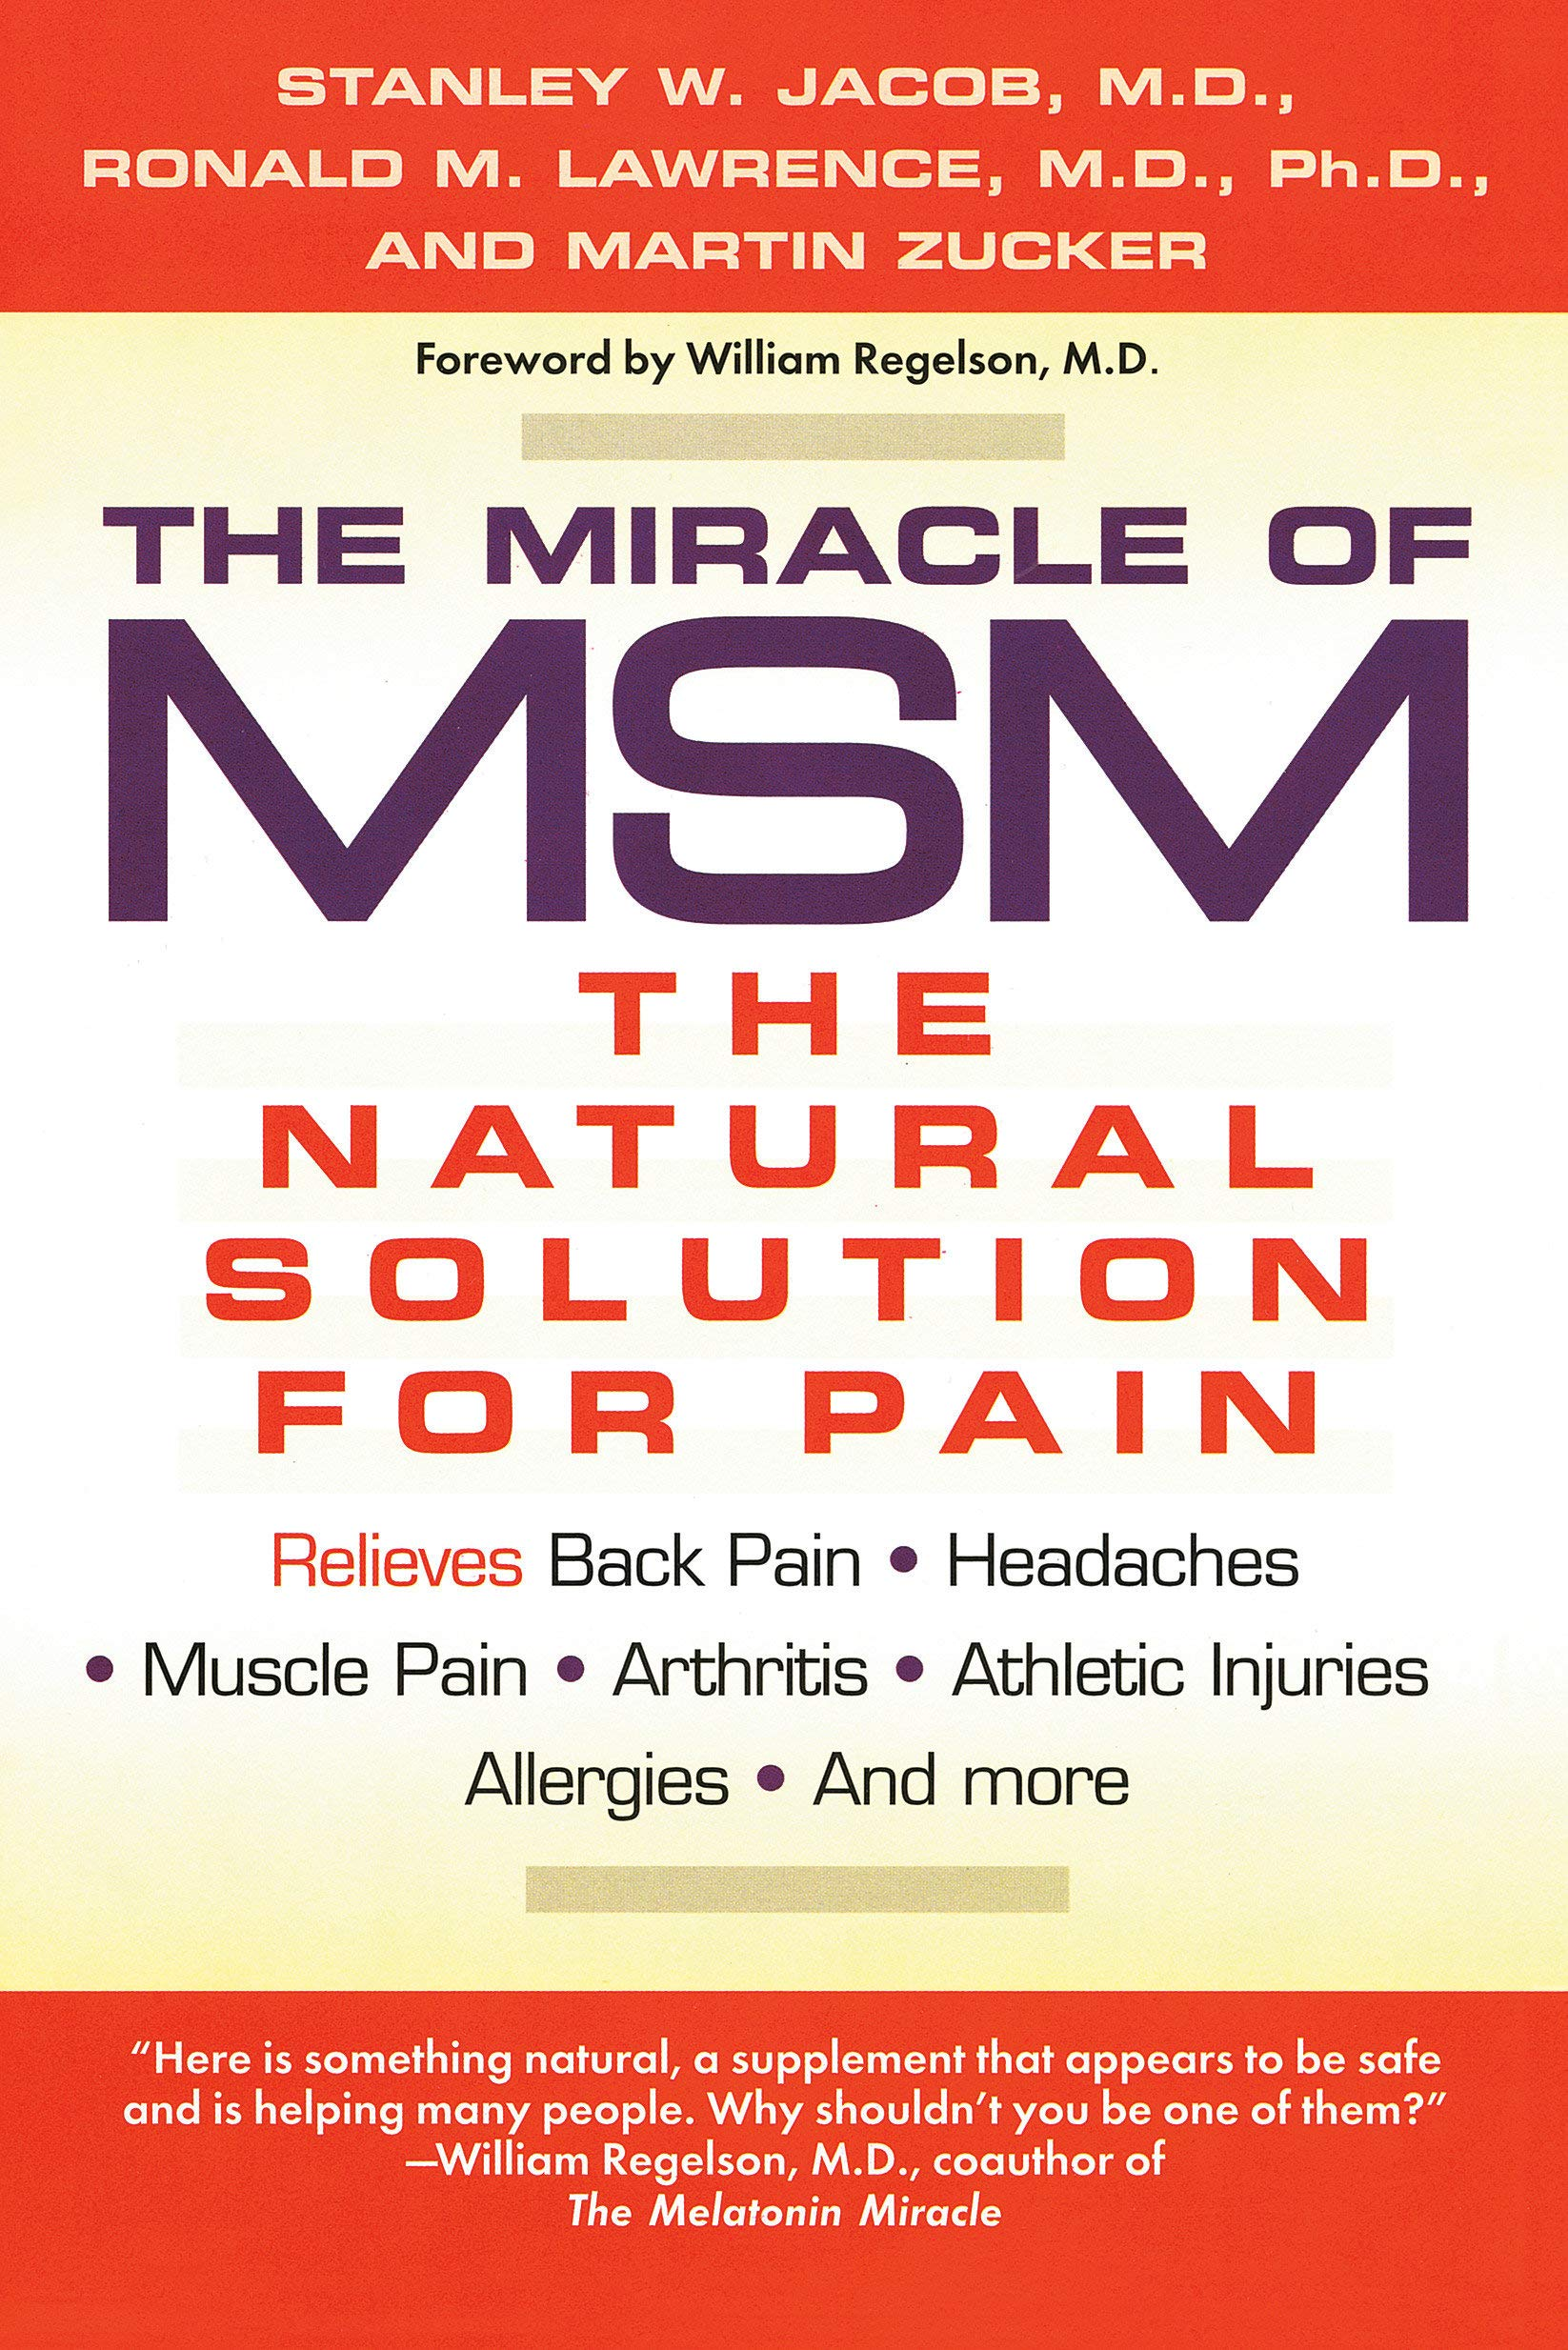 Image OfThe Miracle Of MSM: The Natural Solution For Pain